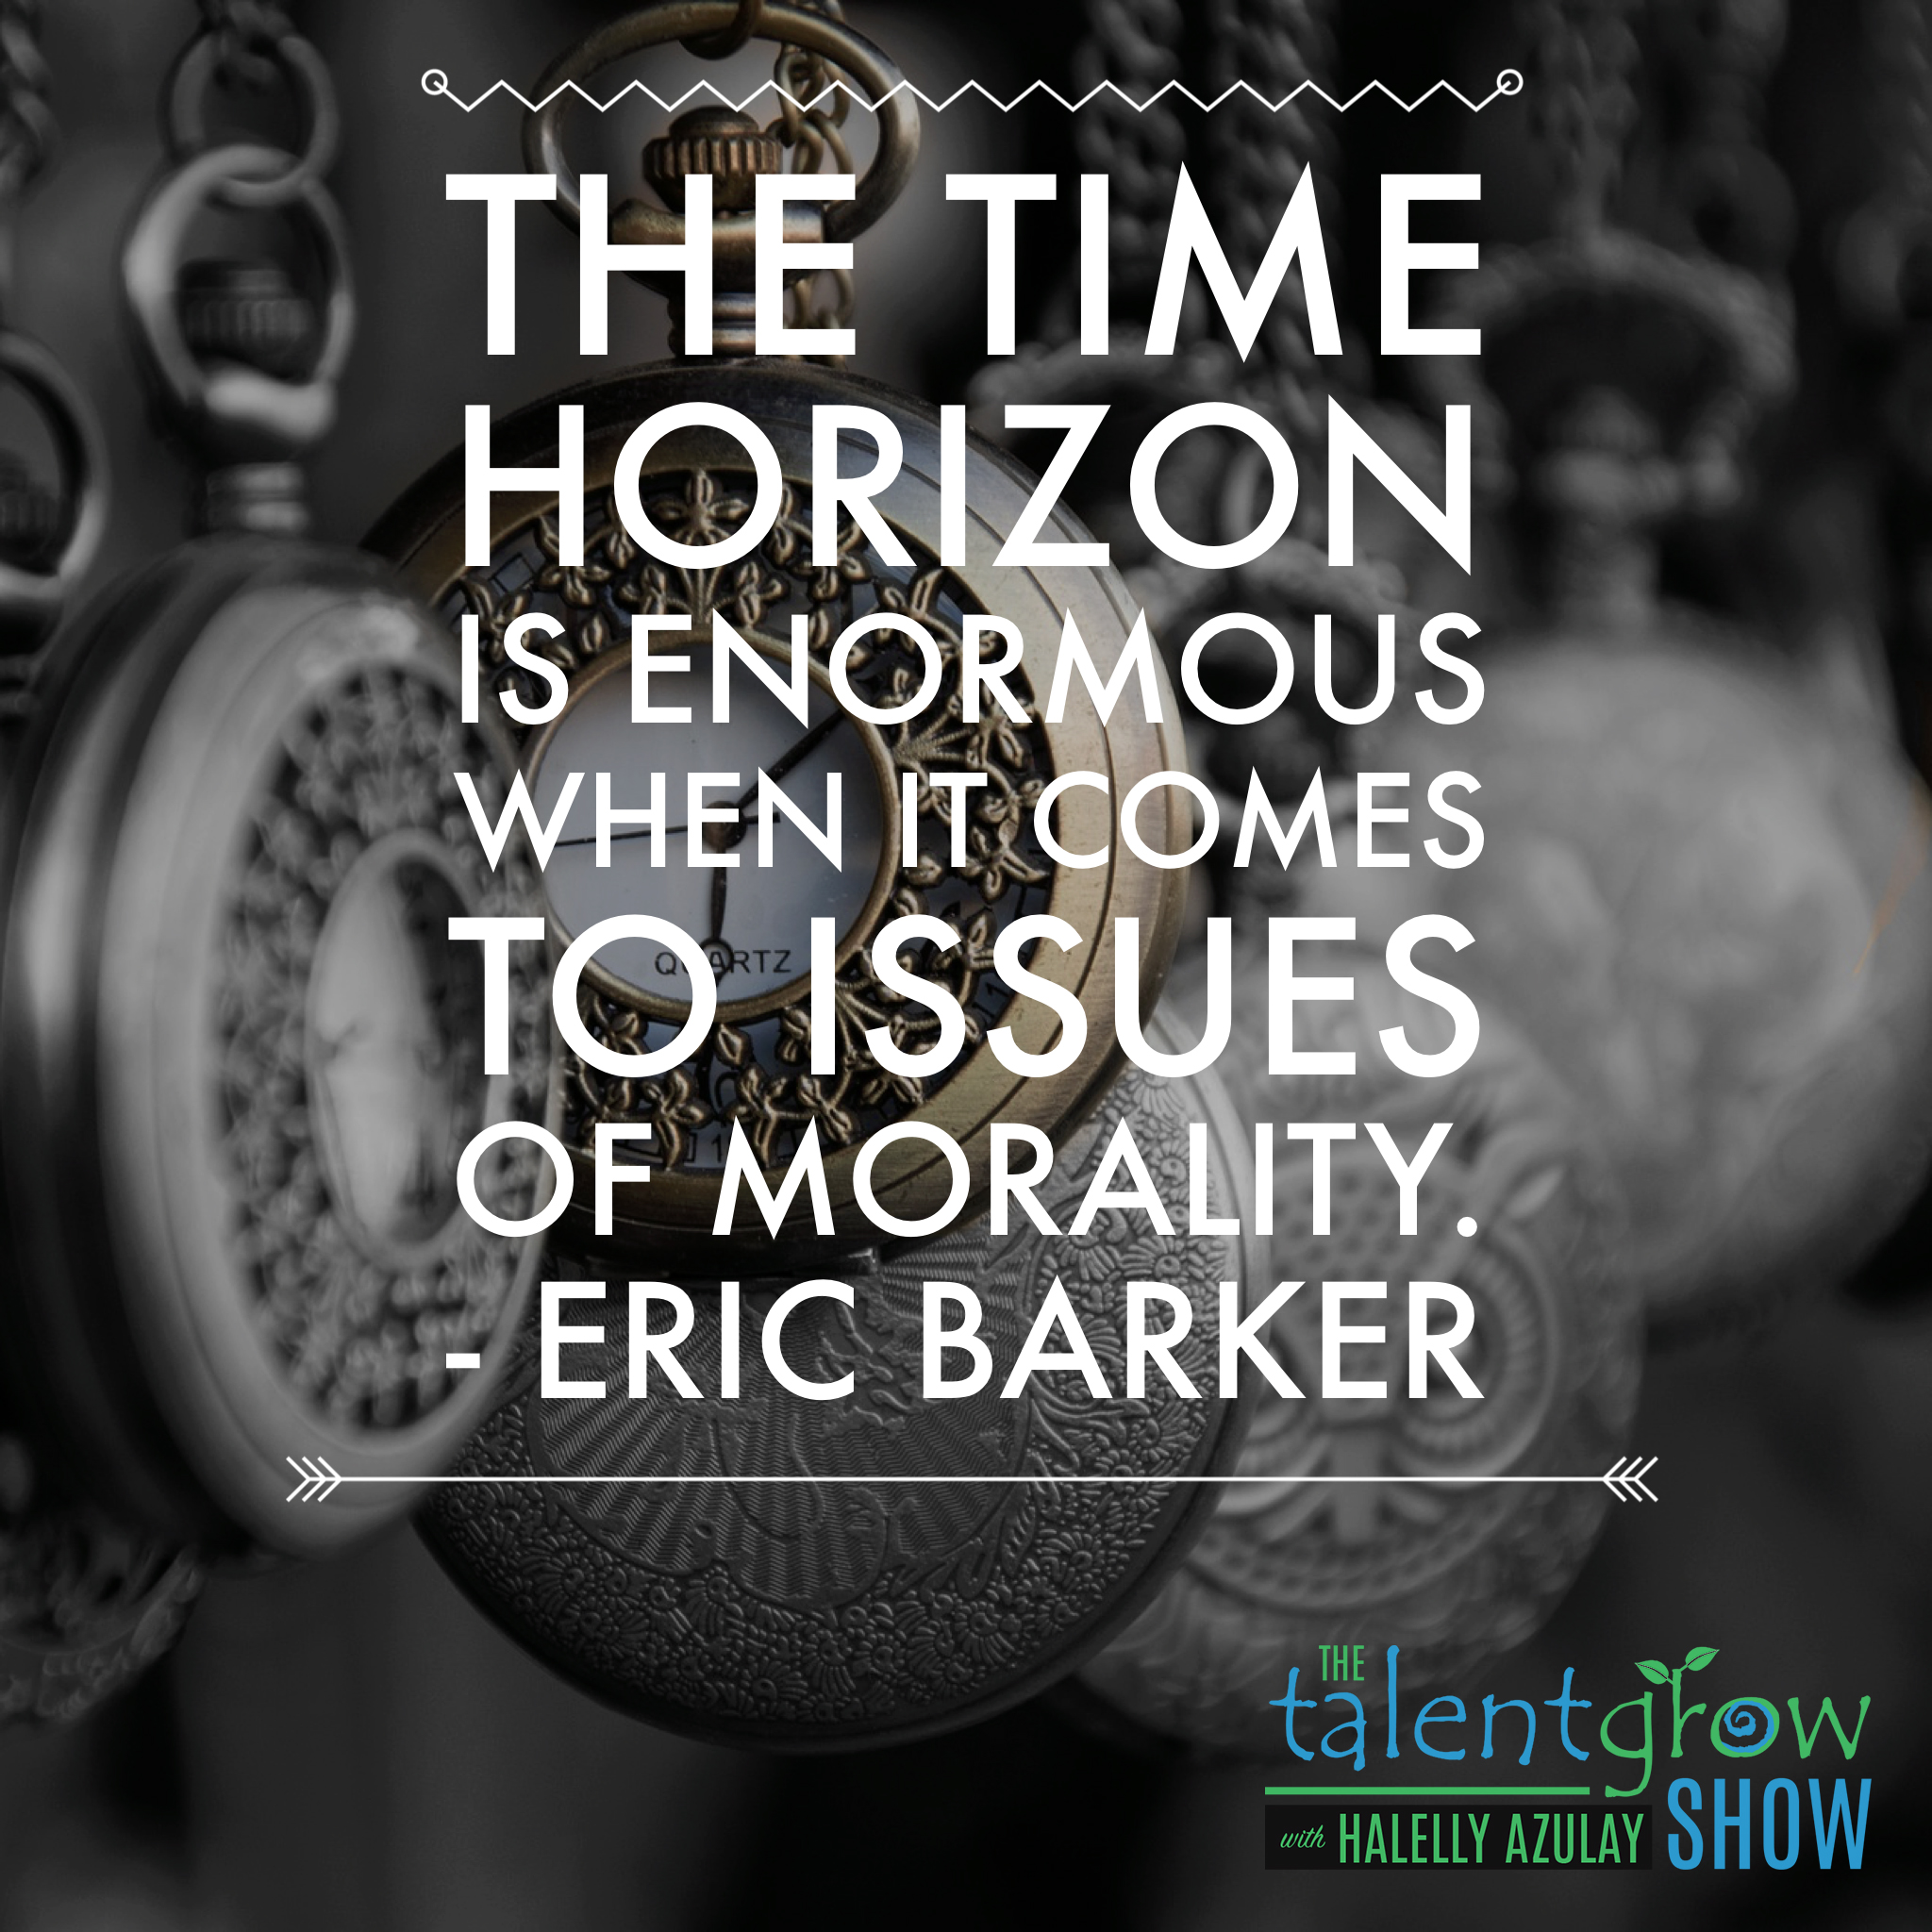 Success tips from Eric Barker on the TalentGrow Show podcast with Halelly Azulay